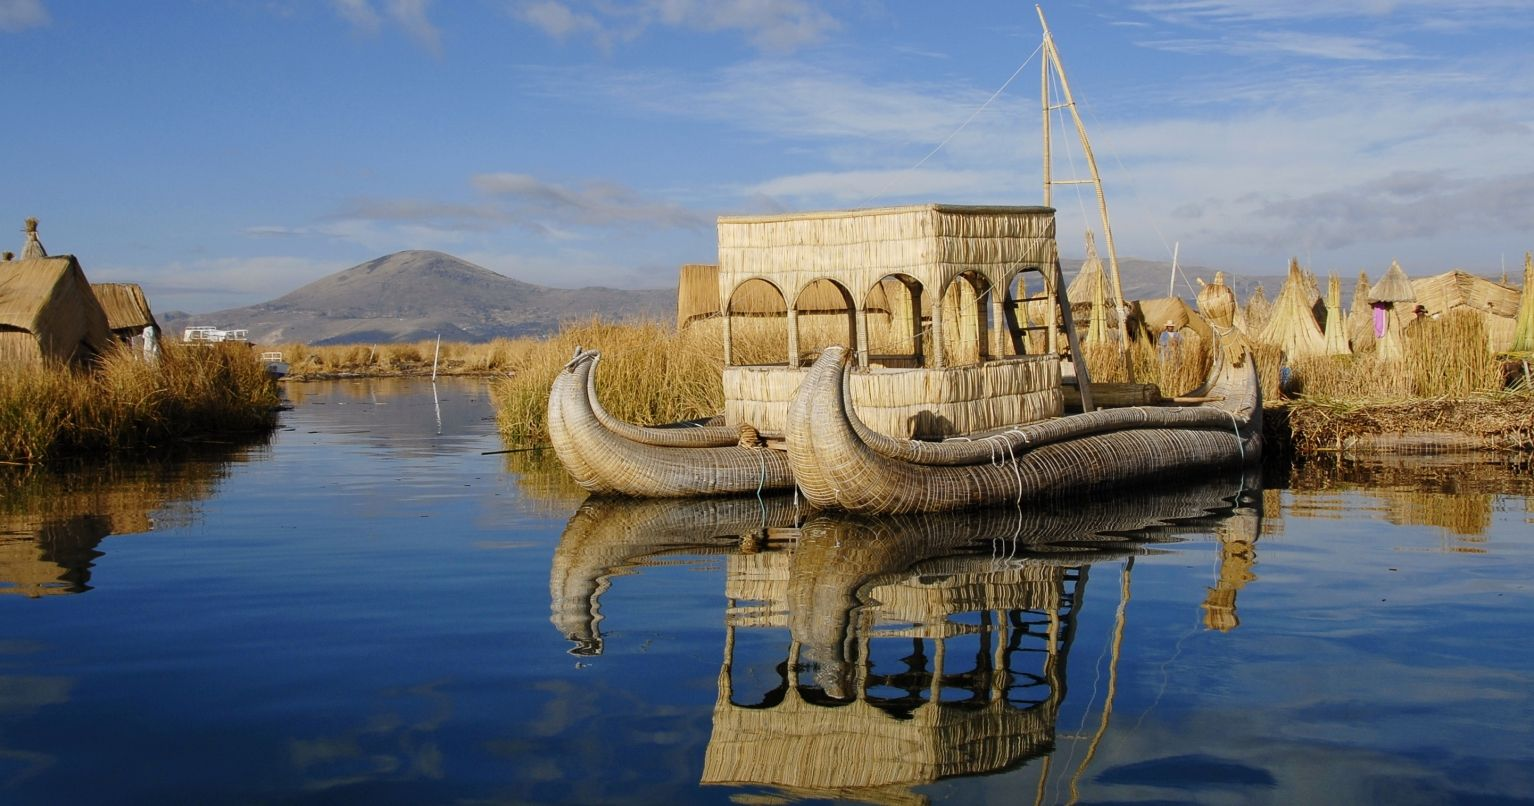 Lake Titicaca Uros & Taquile Peru Experience Gifts